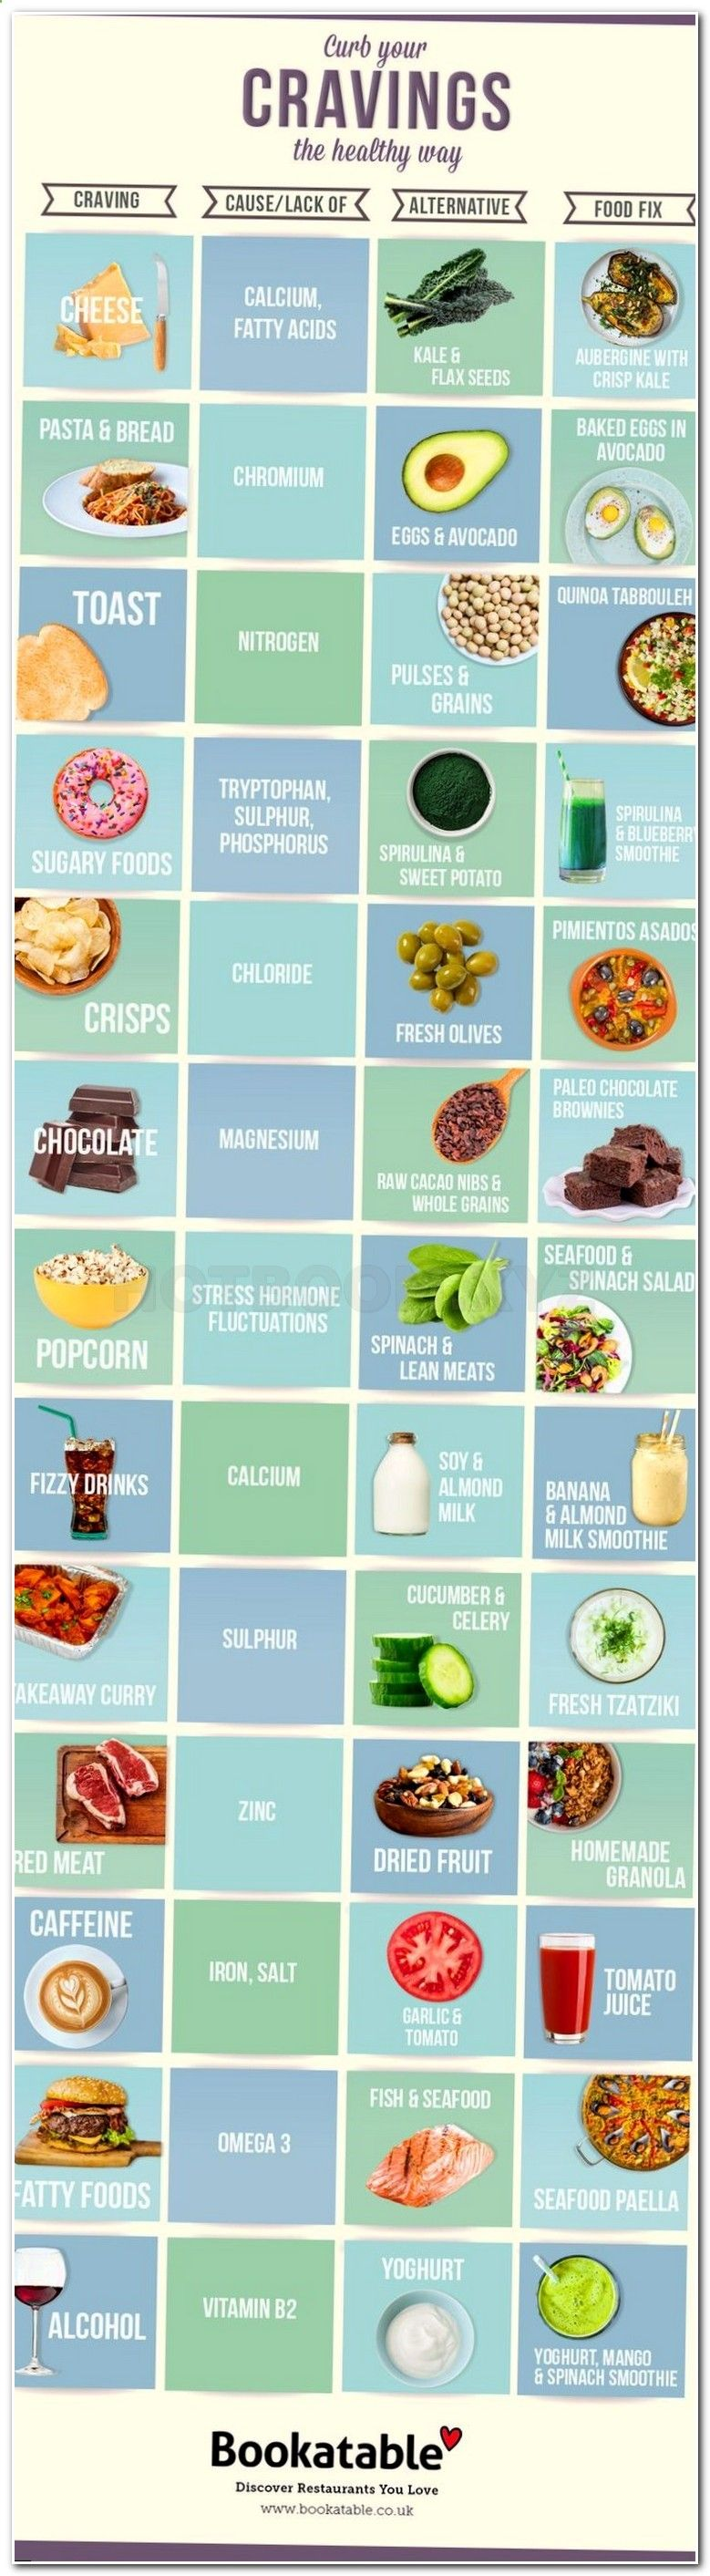 Recipes that help you lose weight fast image 5